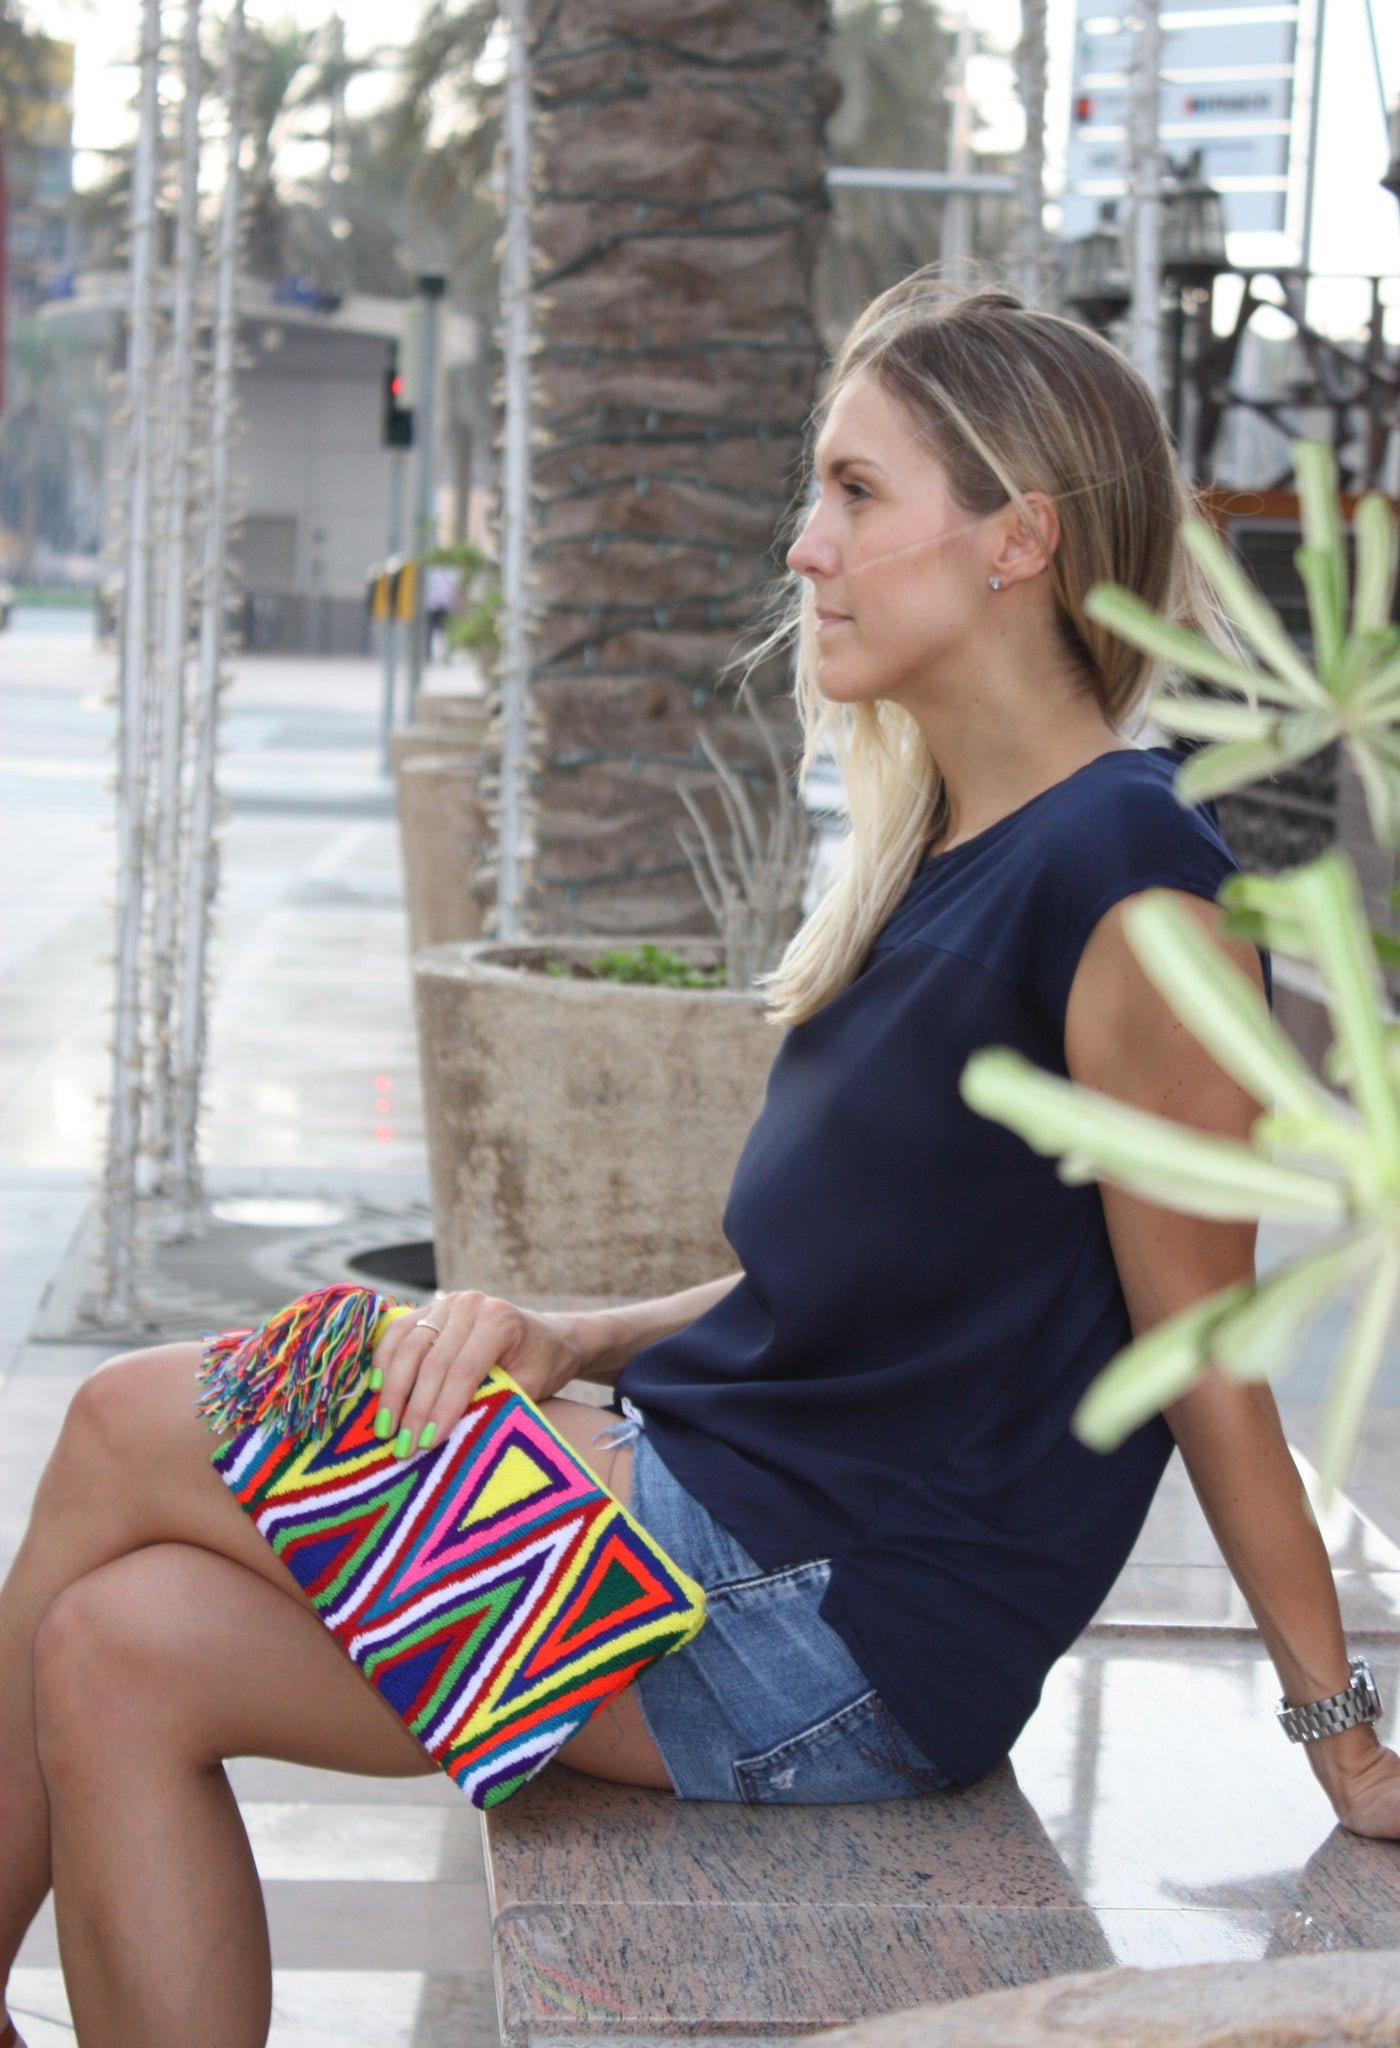 TRIANGLE CLUTCH BAG - Let's Beach